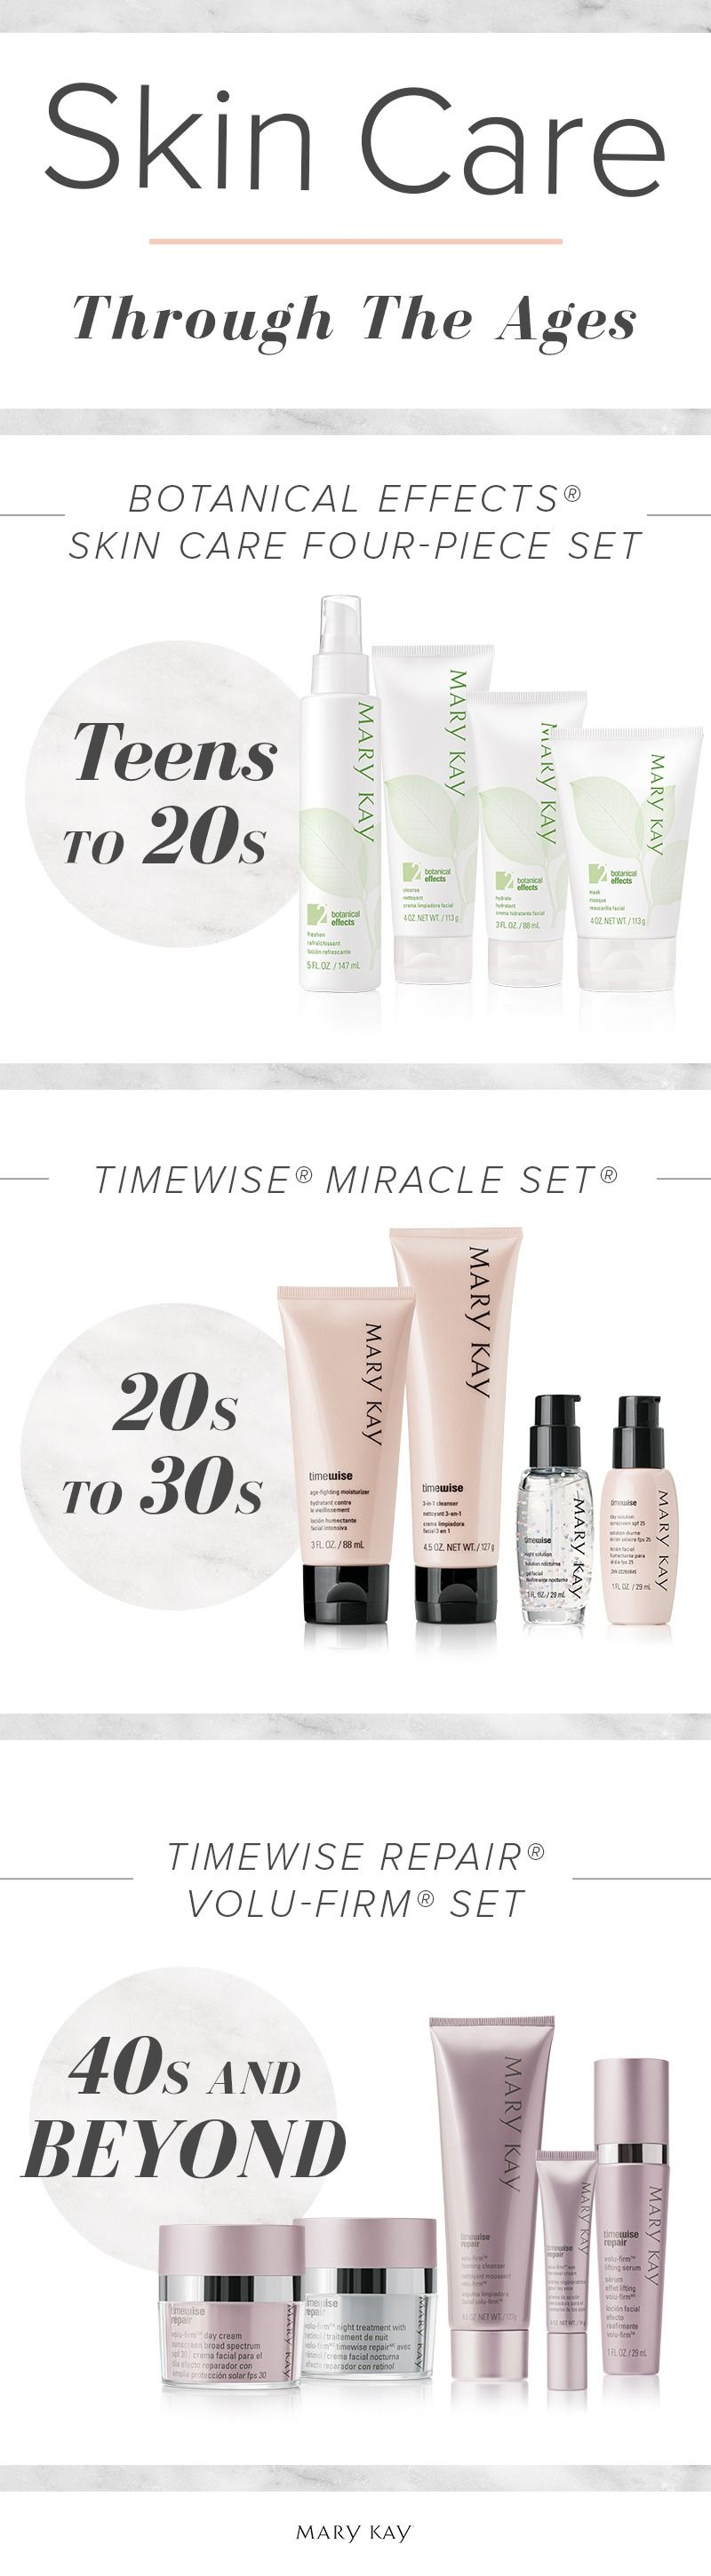 Your Skin Changes Throughout Your Life And So Should Your Skin Care Need Help Finding The Perfect Skin Care Regime Mary Kay Party Mary Kay Mary Kay Cosmetics